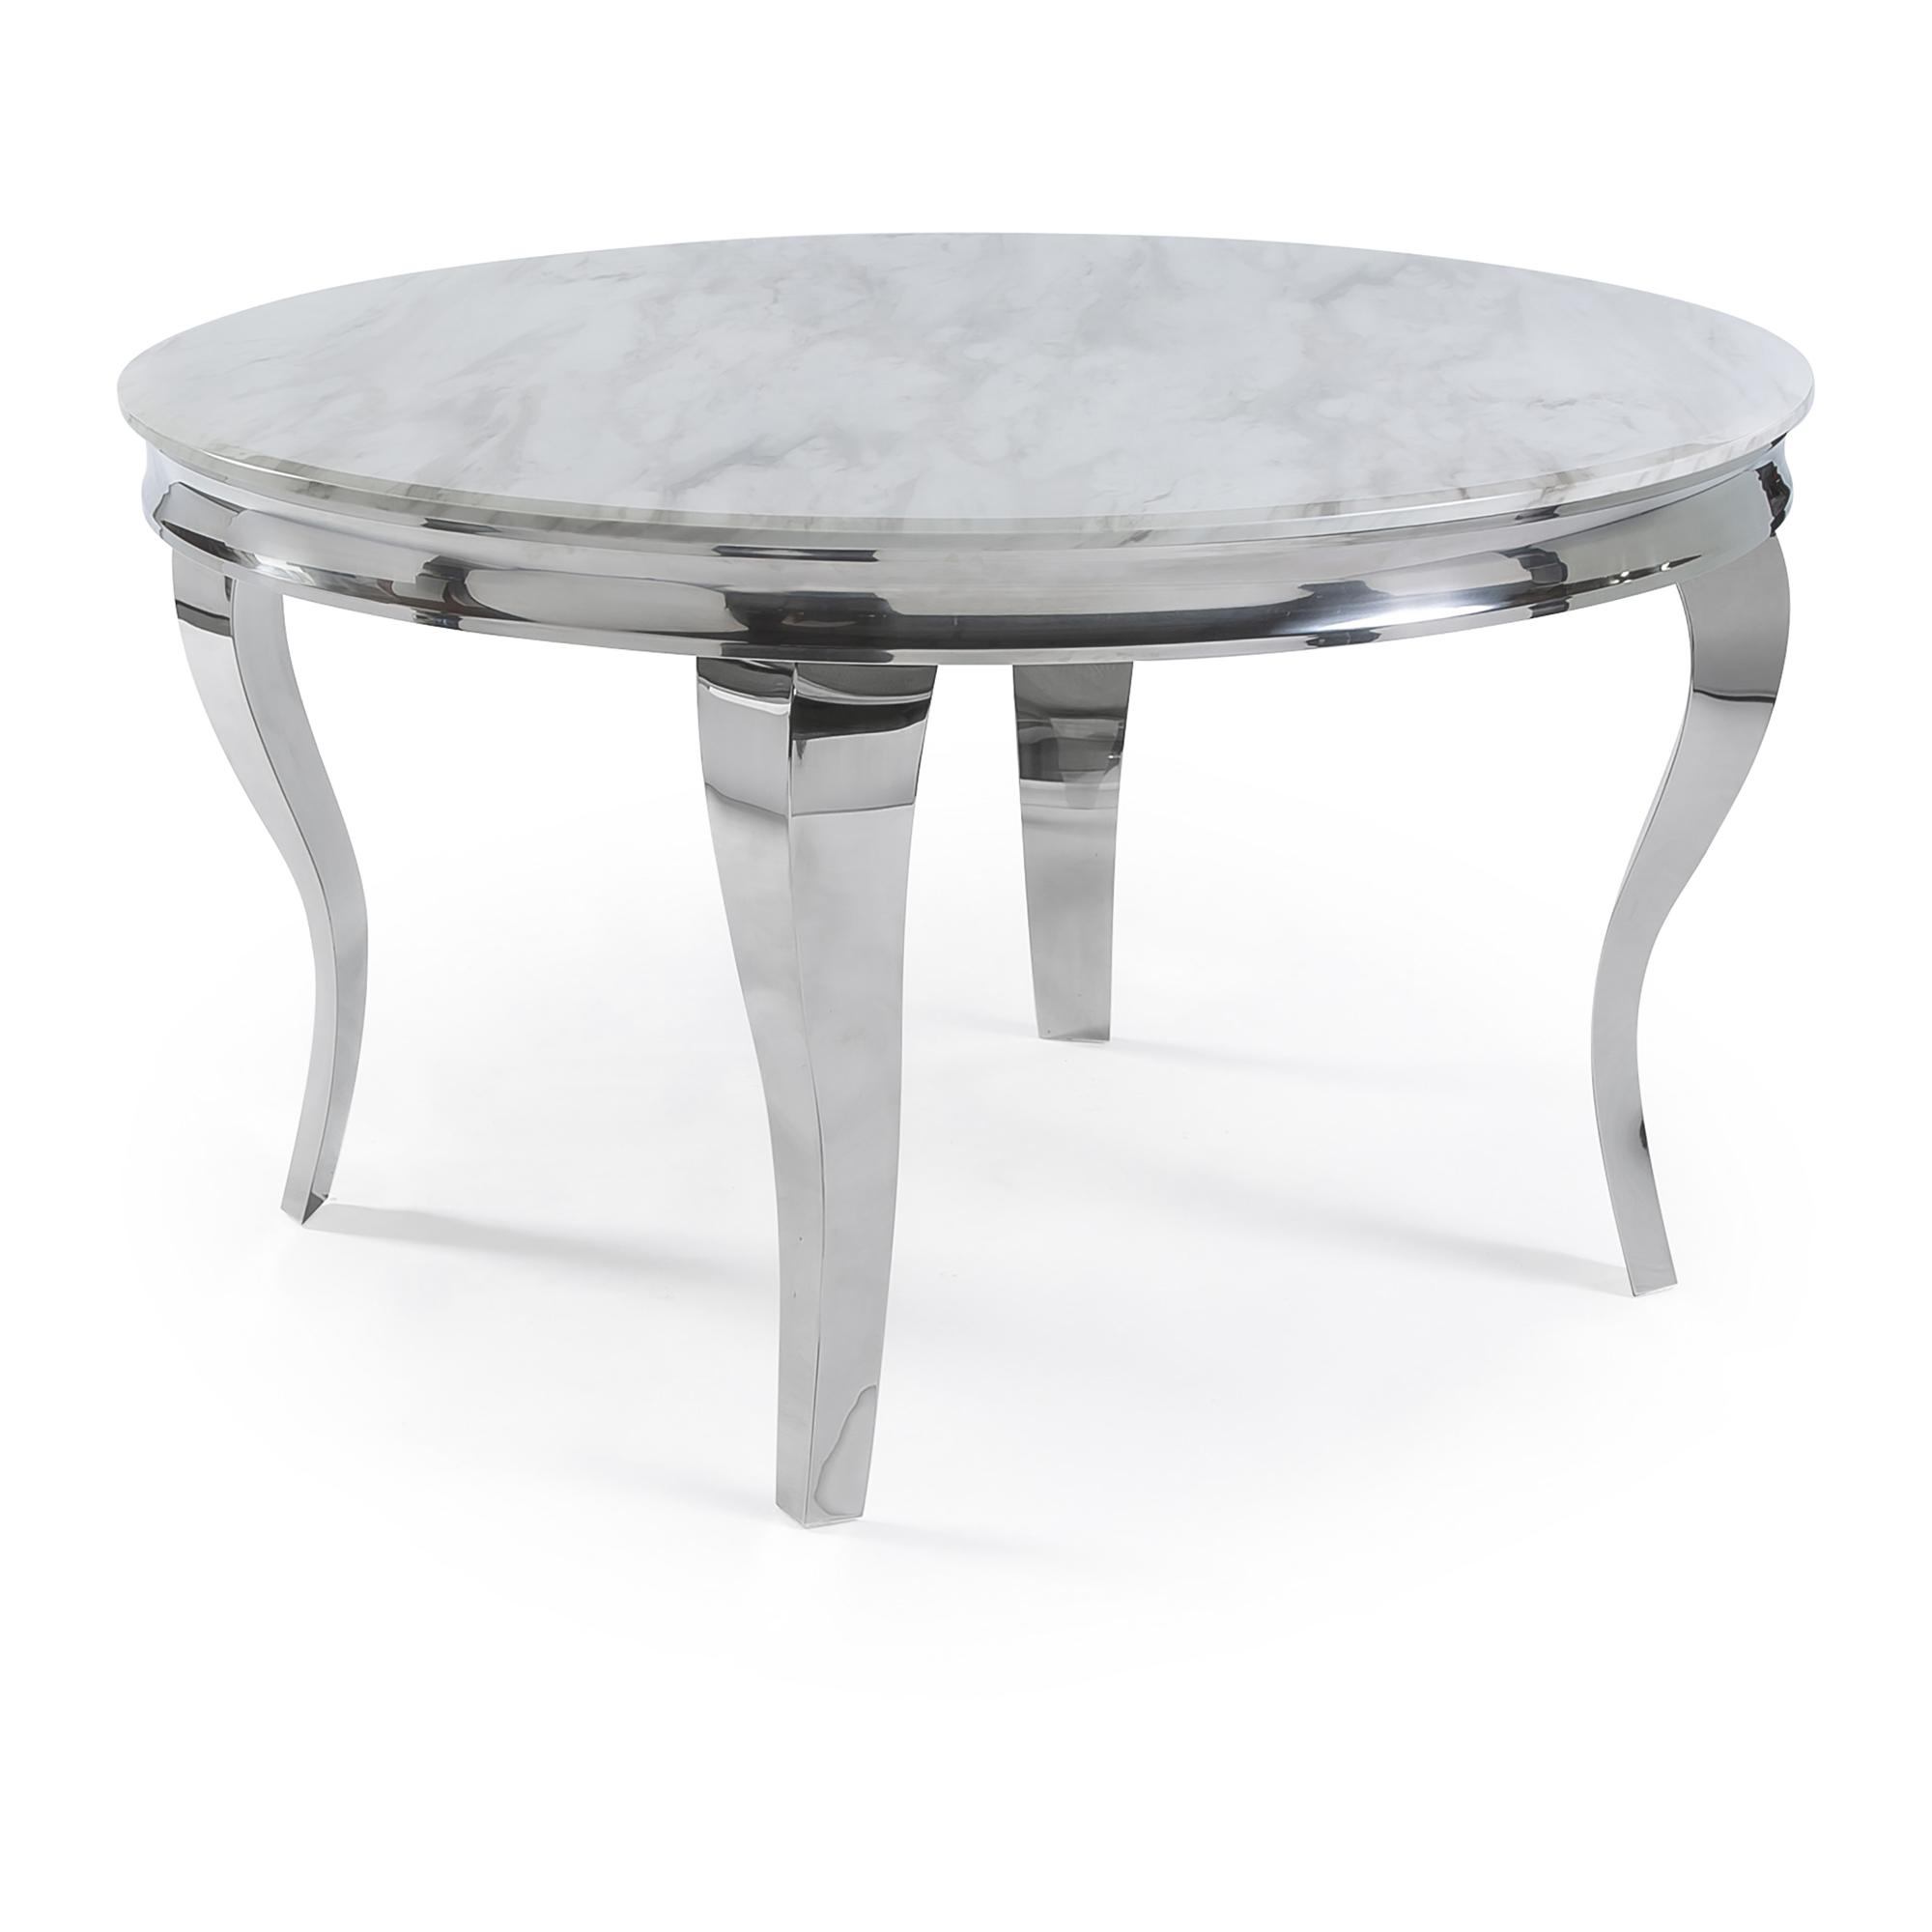 1.3m Circular Louis Polished Steel Dining White Marble Table Set with 4 Grey Brushed Velvet Dining Chair